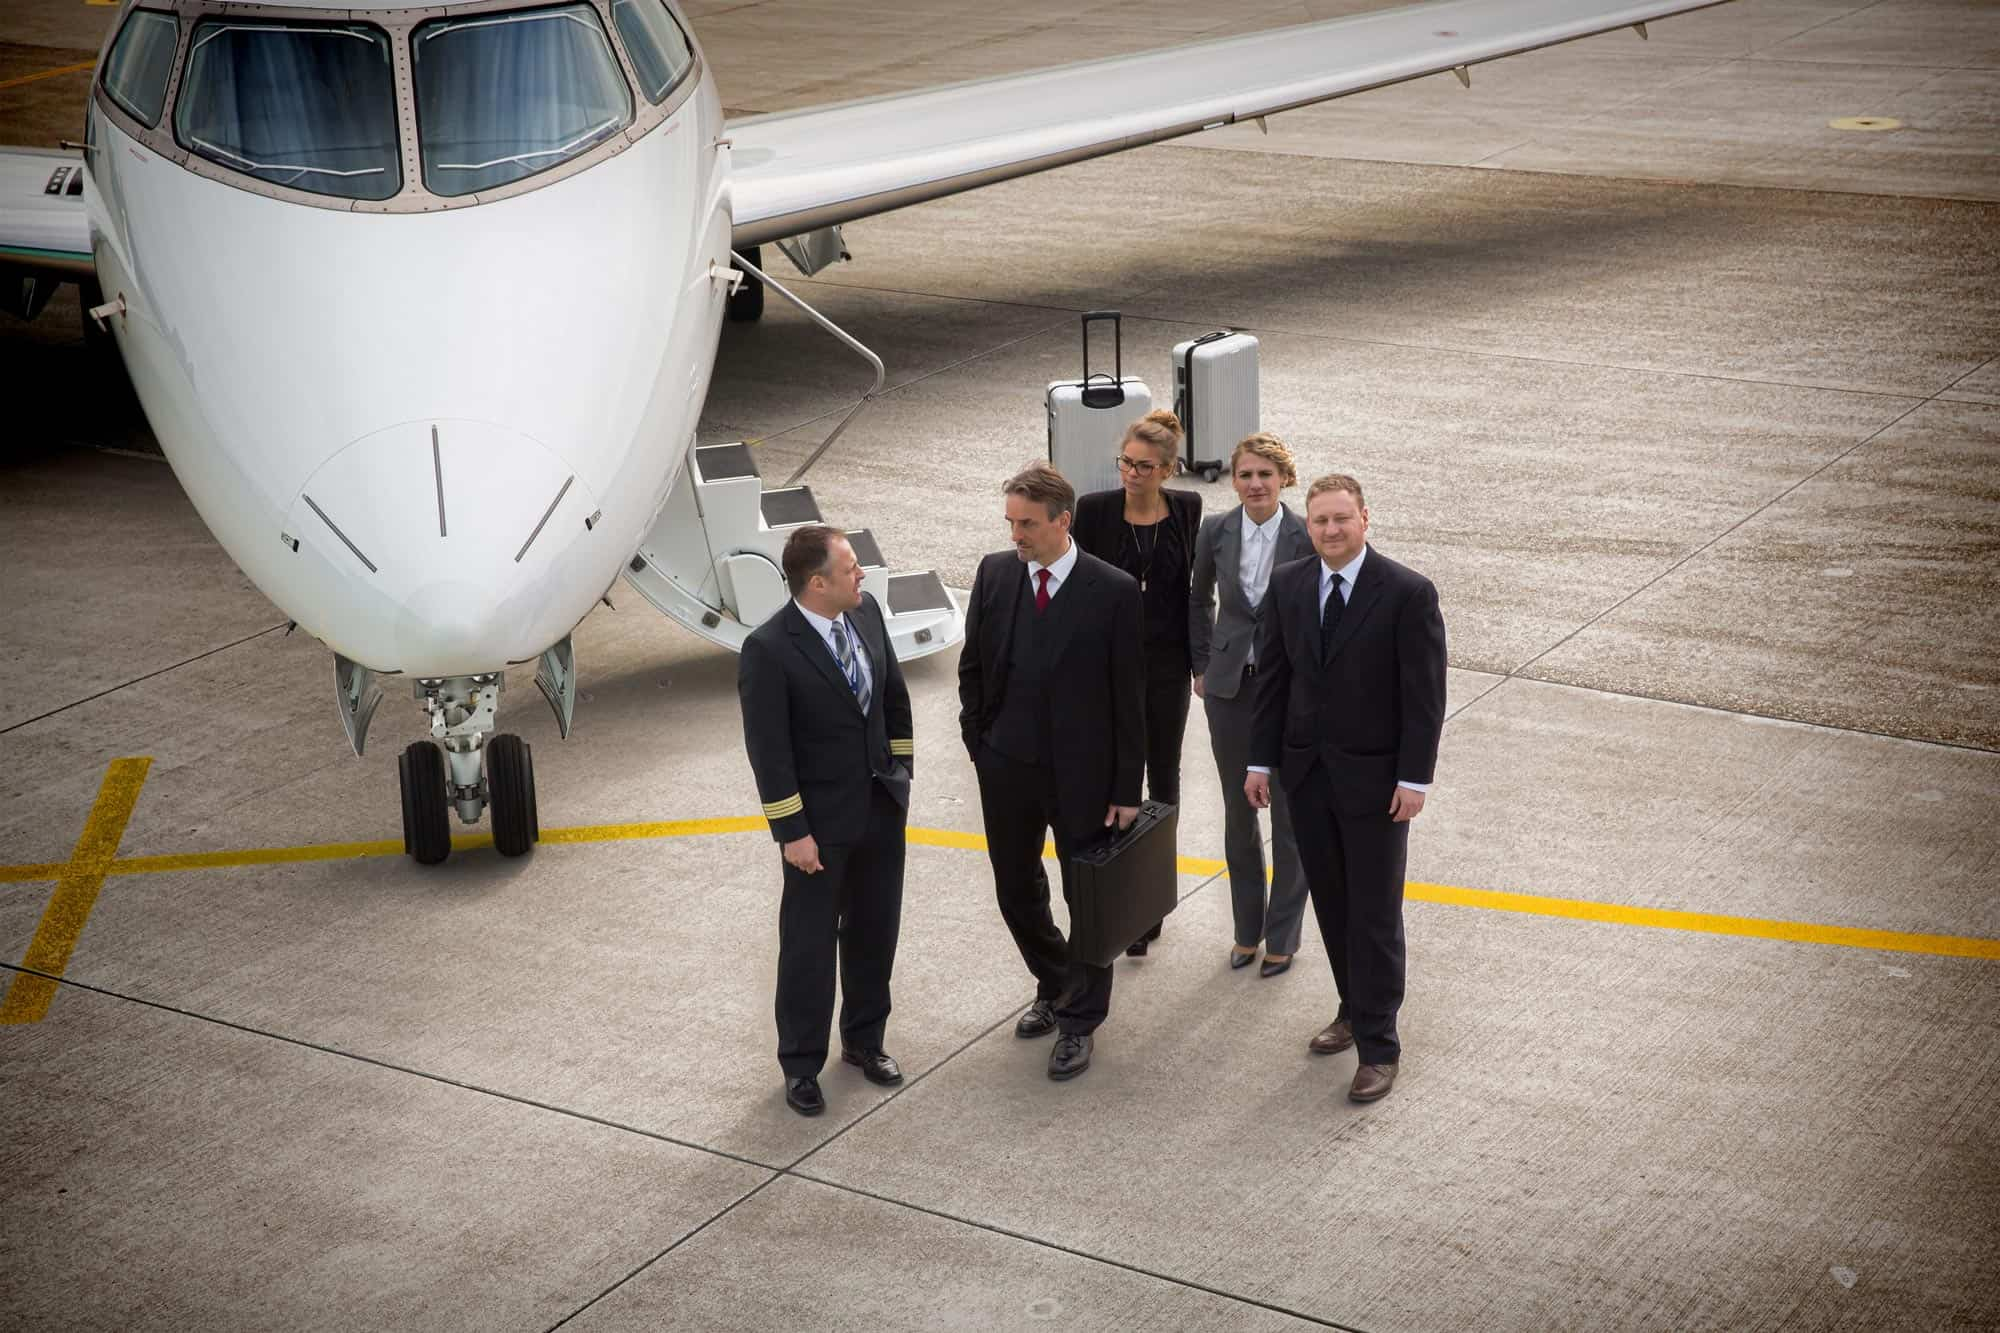 Small Business Executives next to Private Jet